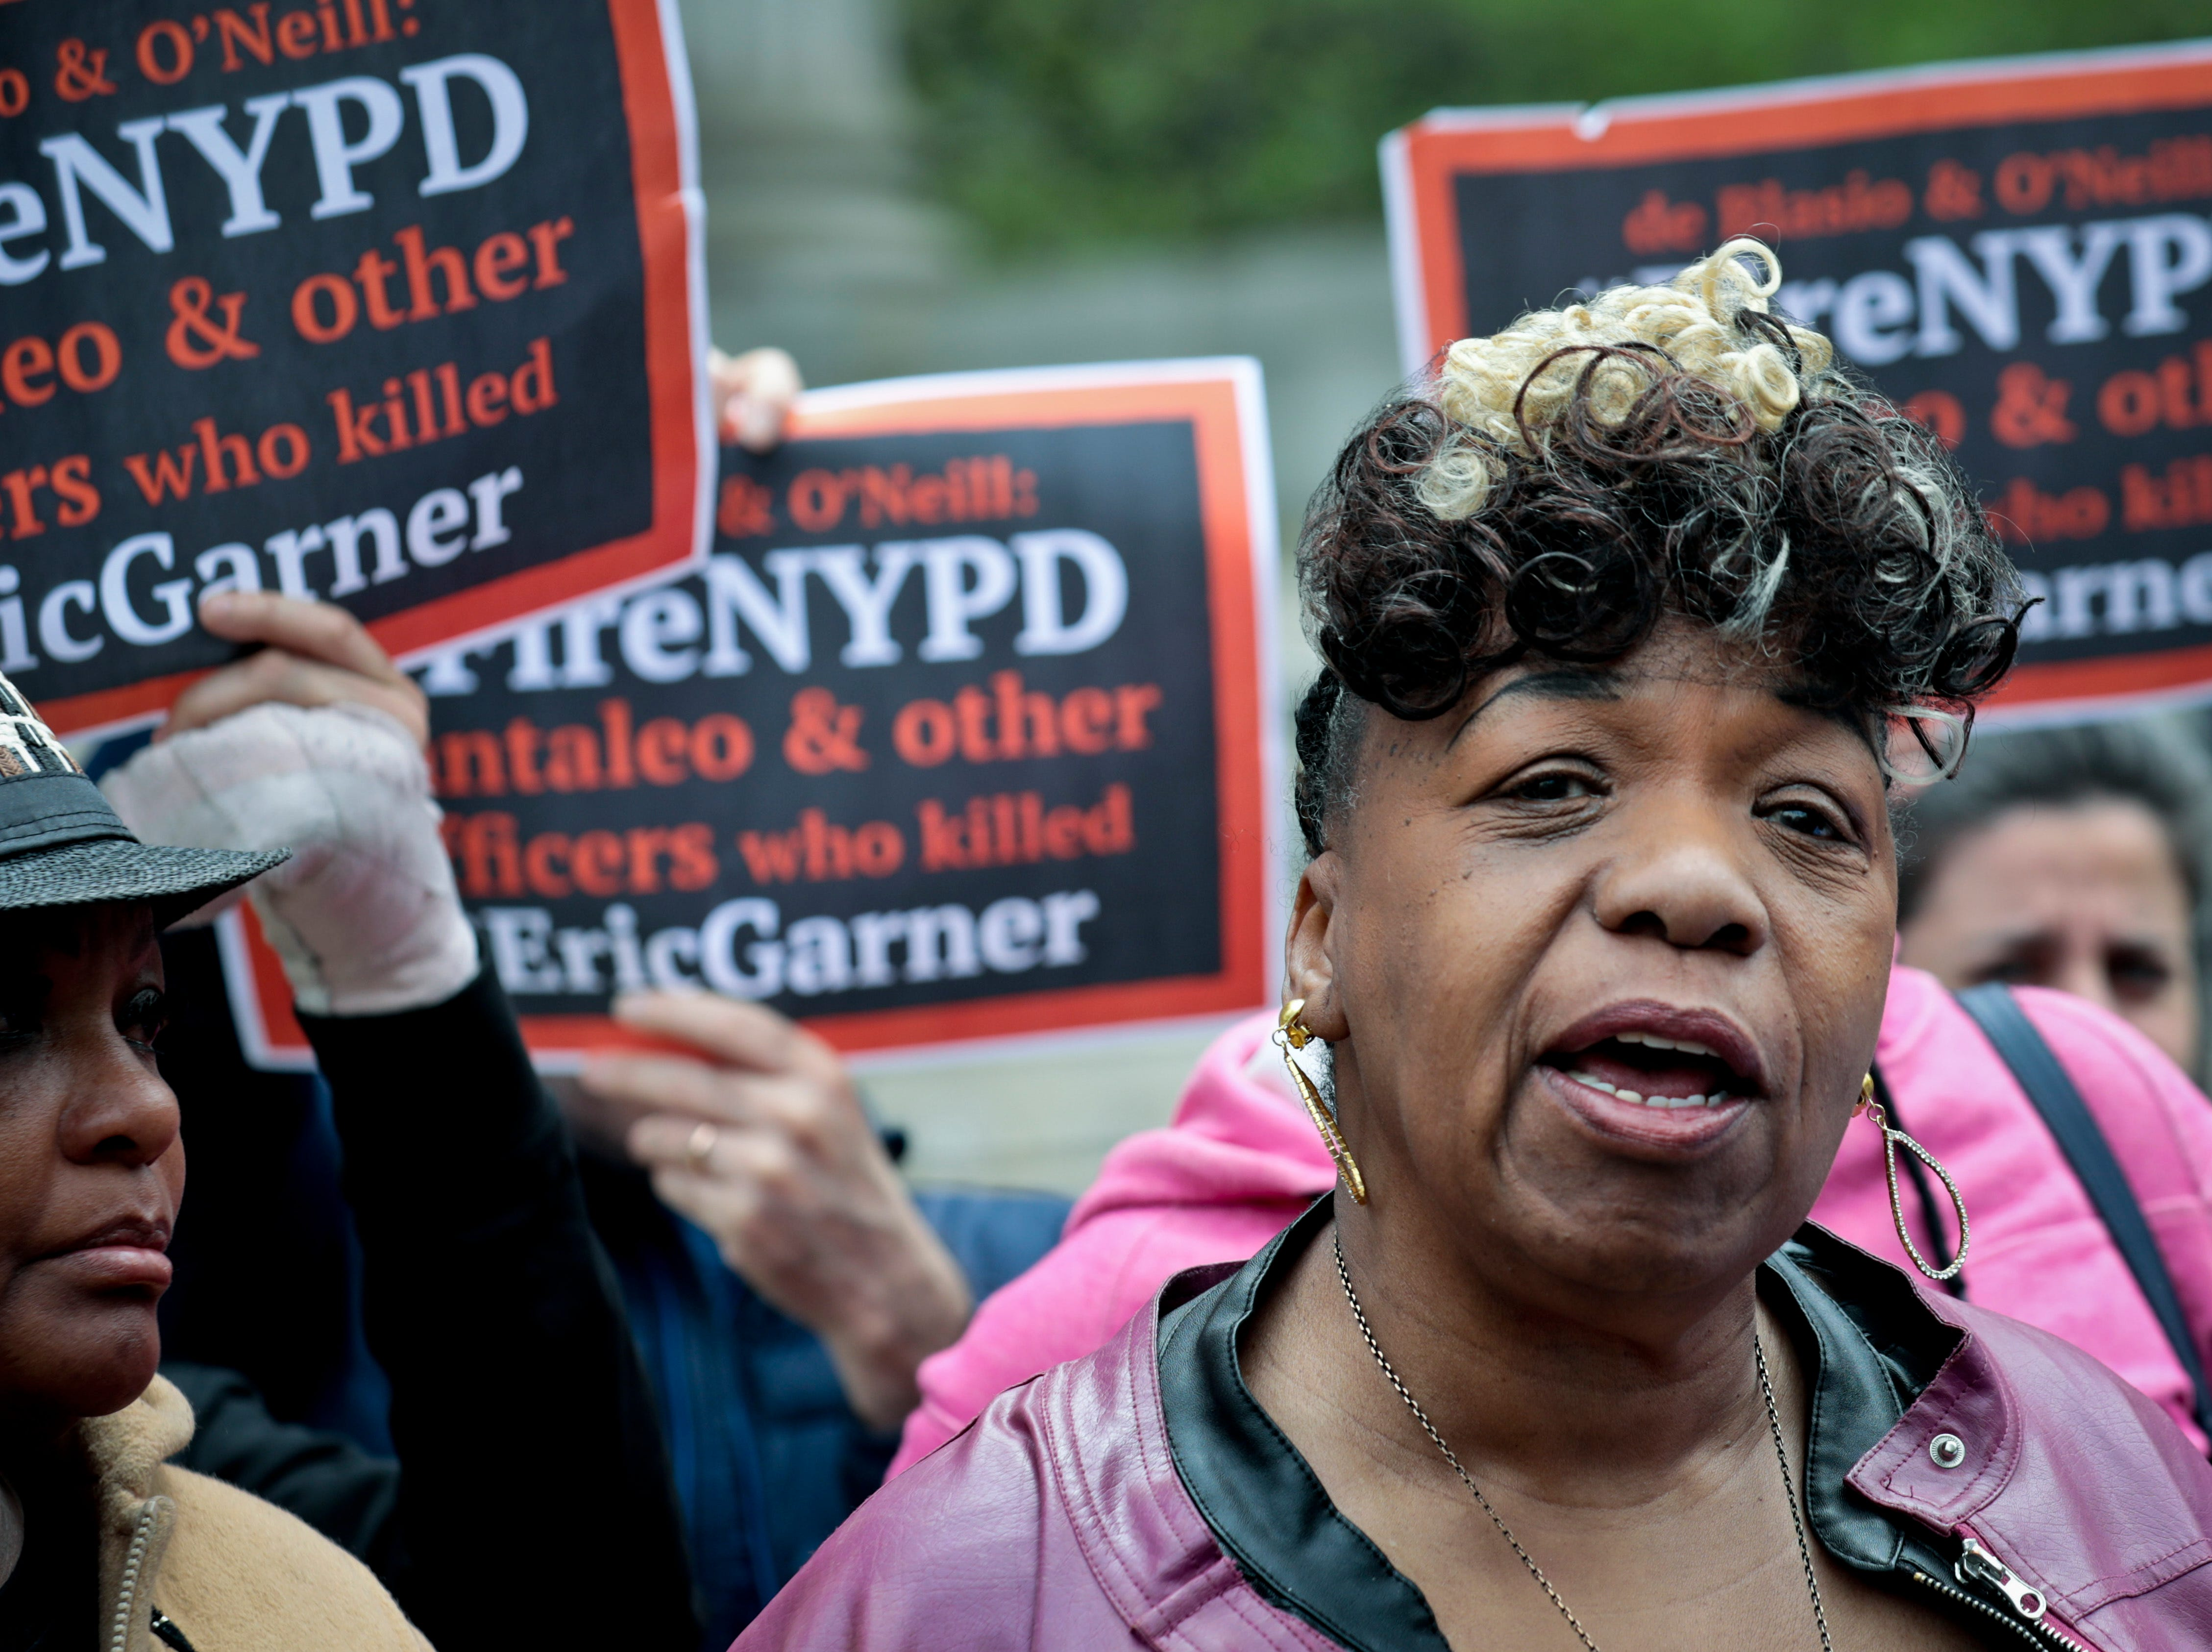 Lawyer: NYPD officer Daniel Pantaleo a 'scapegoat' in Eric Garner's death